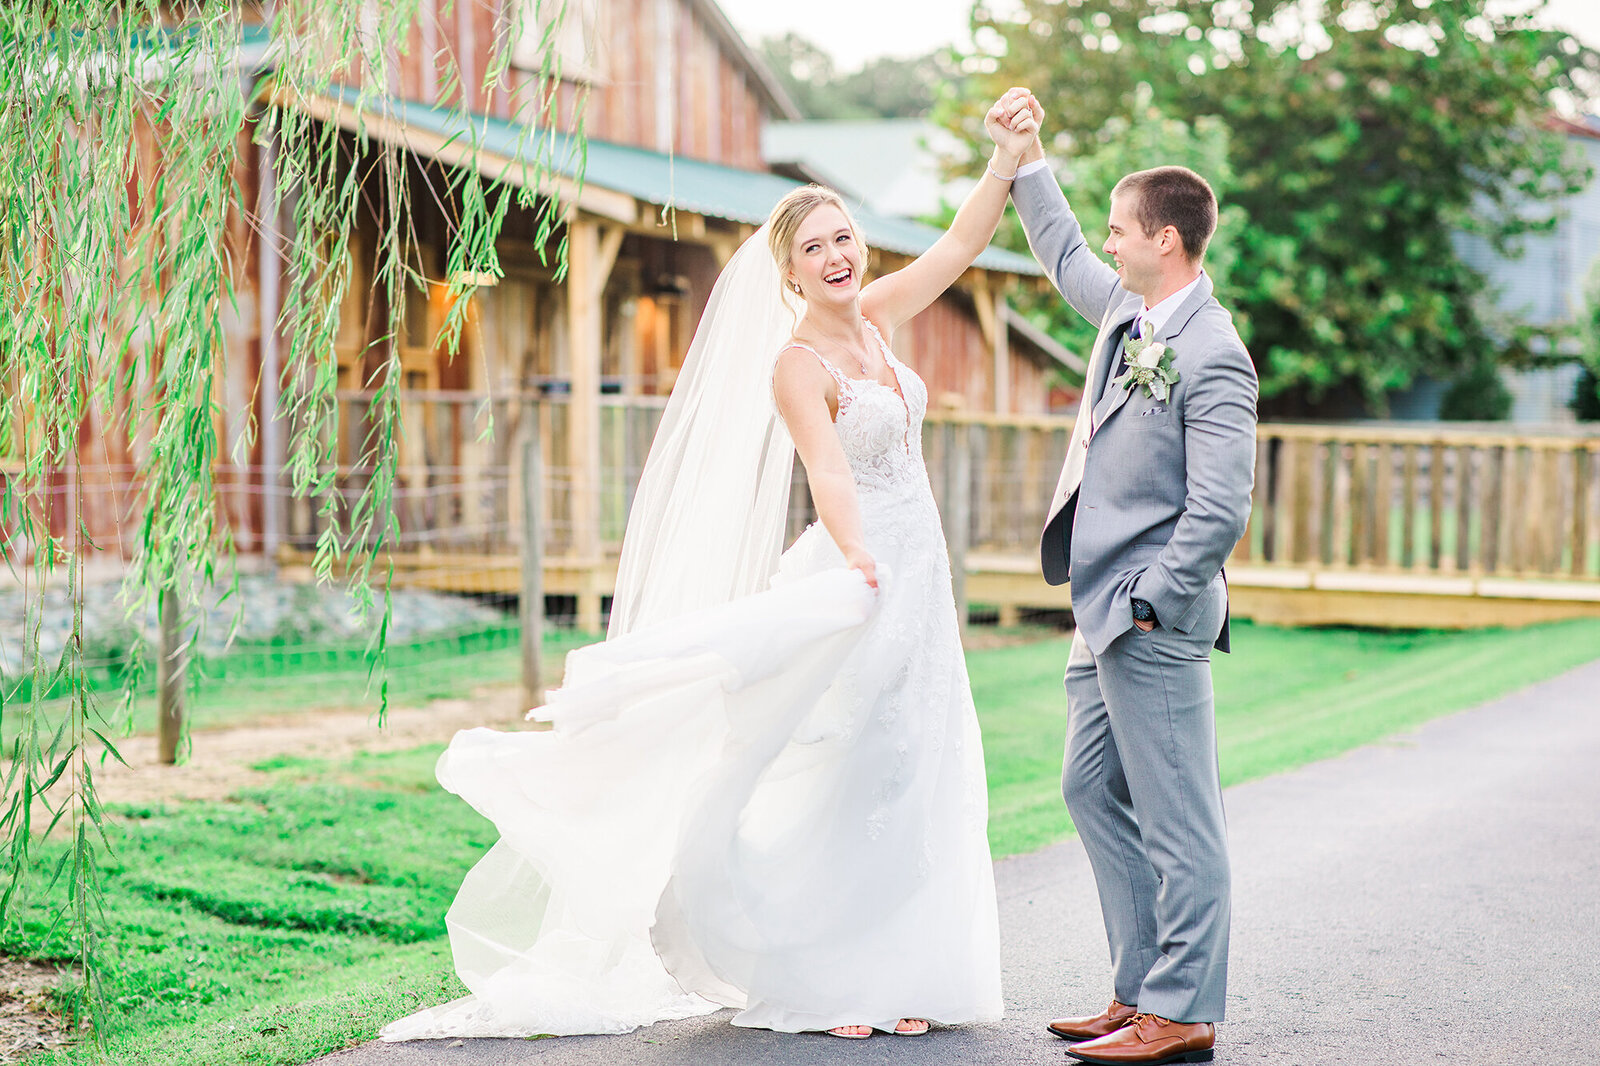 Photography by Tierney Riggs Photography a Raleigh NC Wedding Photographer